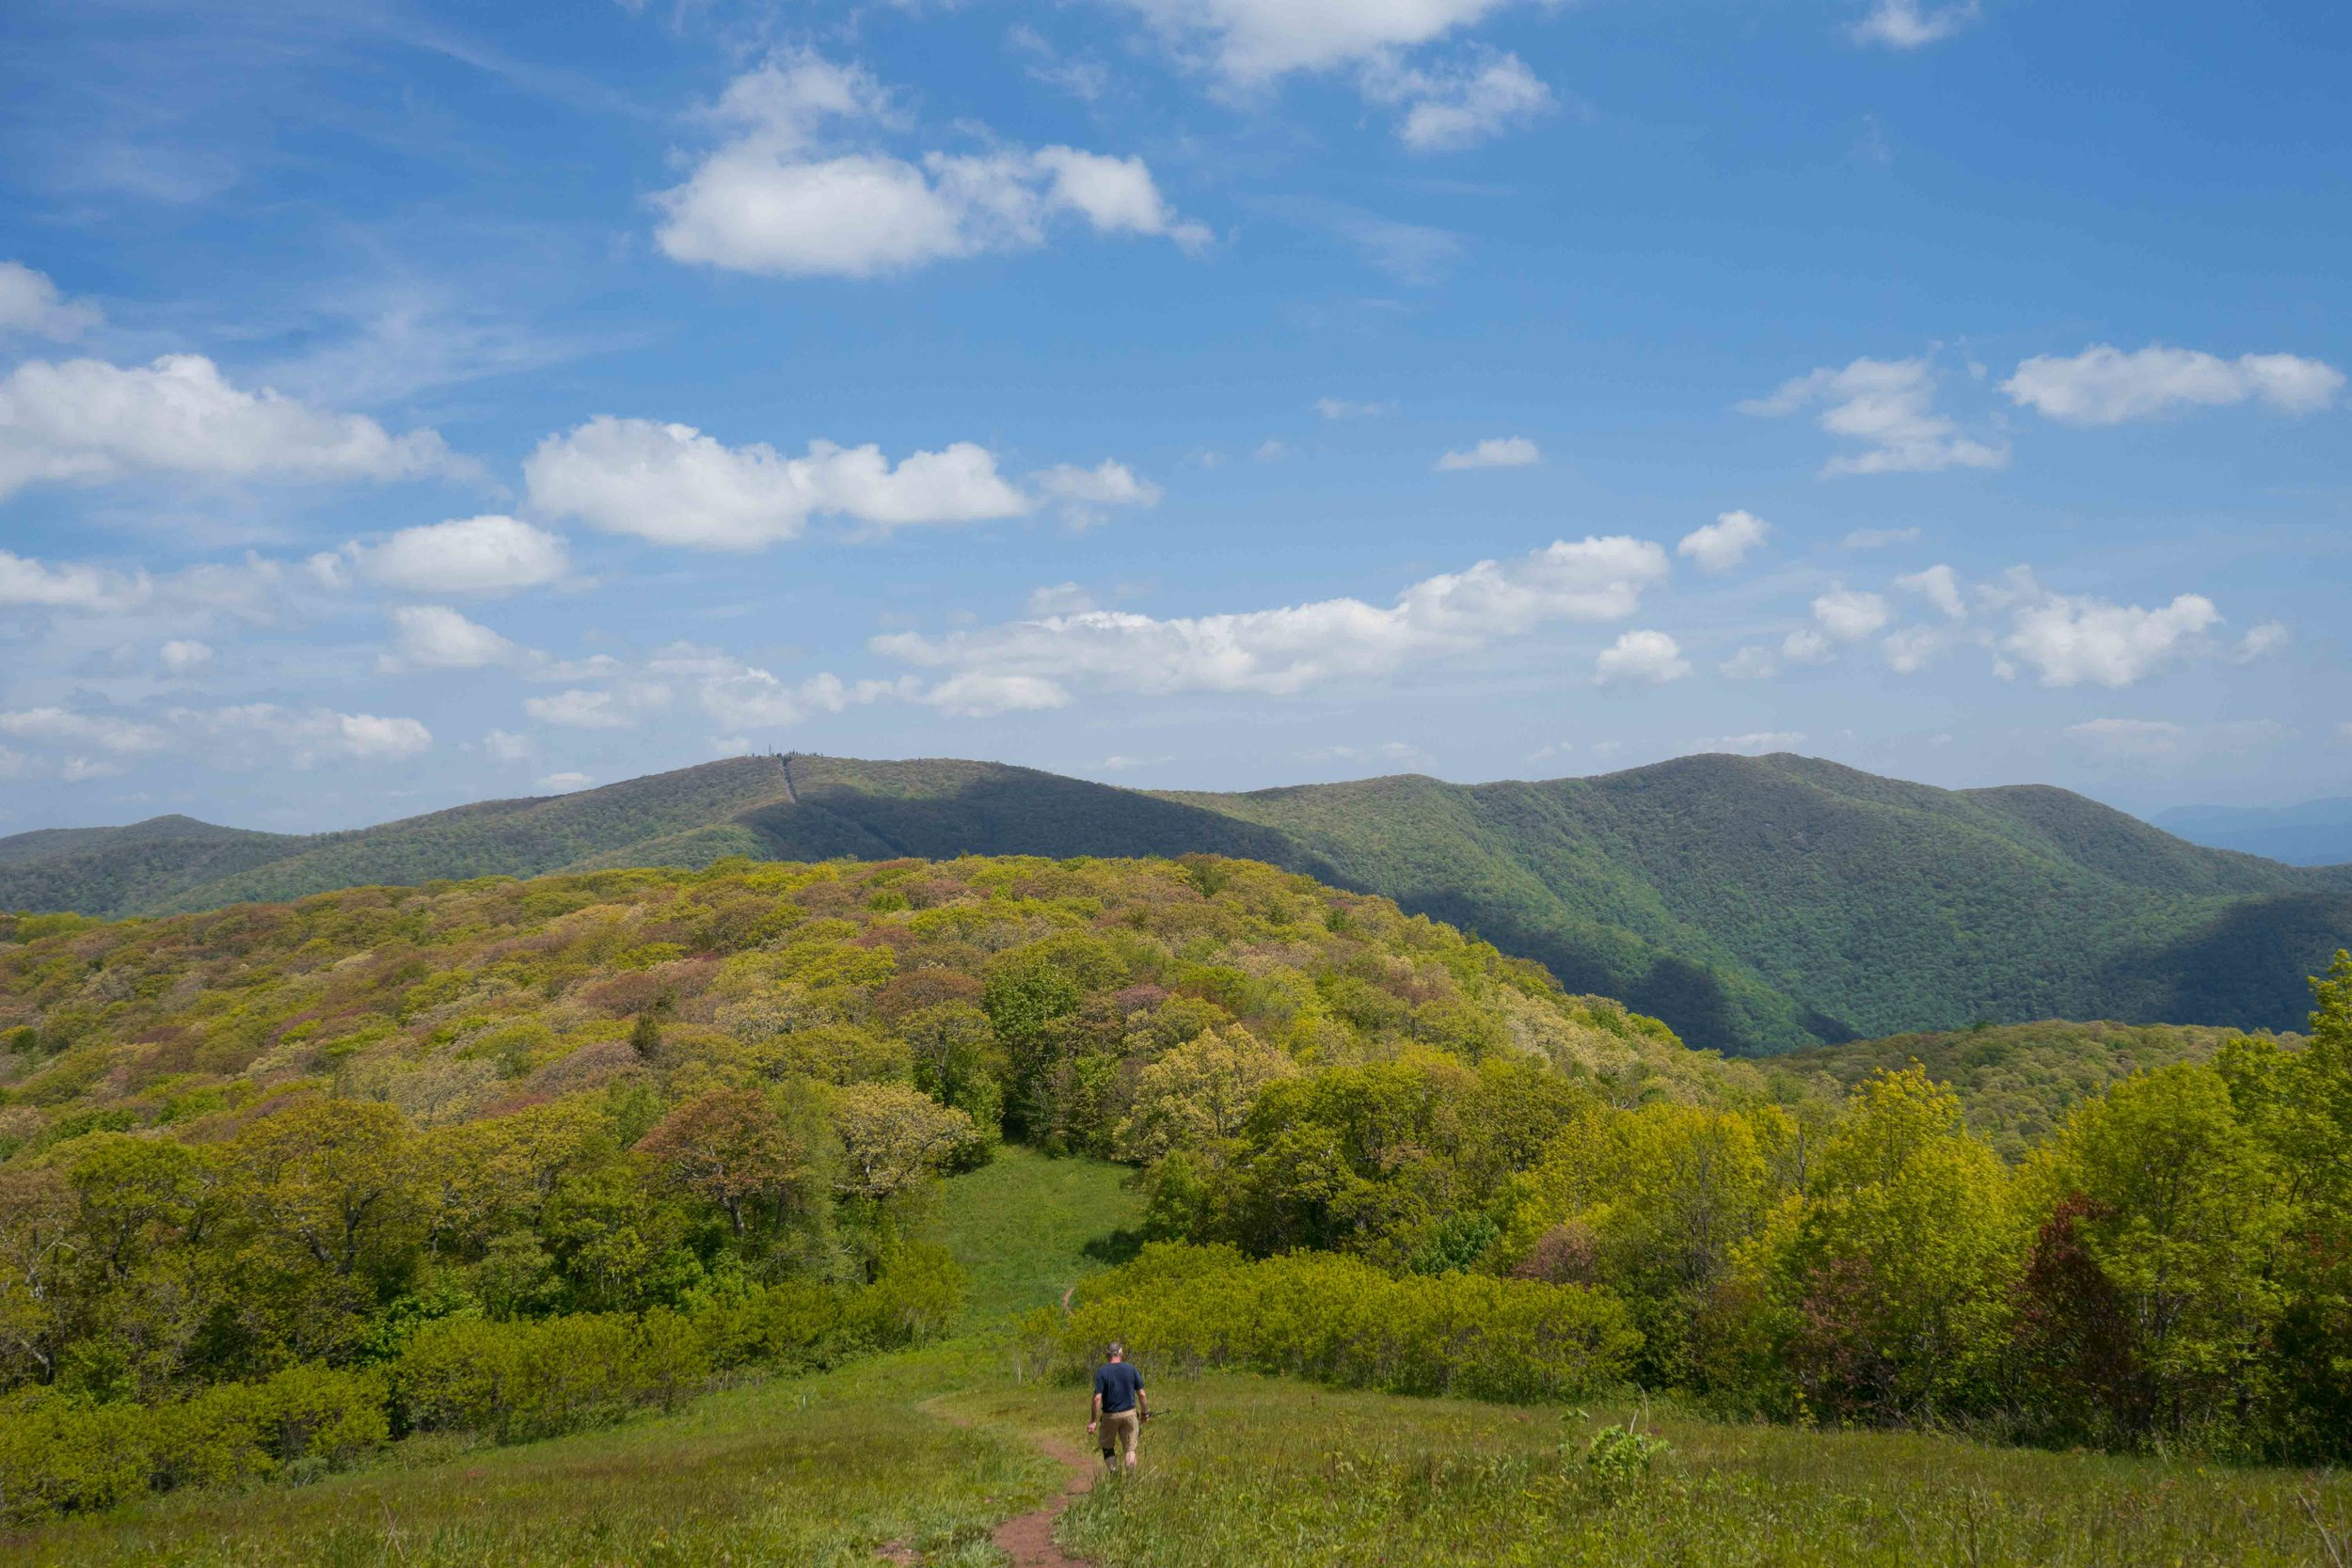 Siler Bald, Appalachian Trail, North Carolina